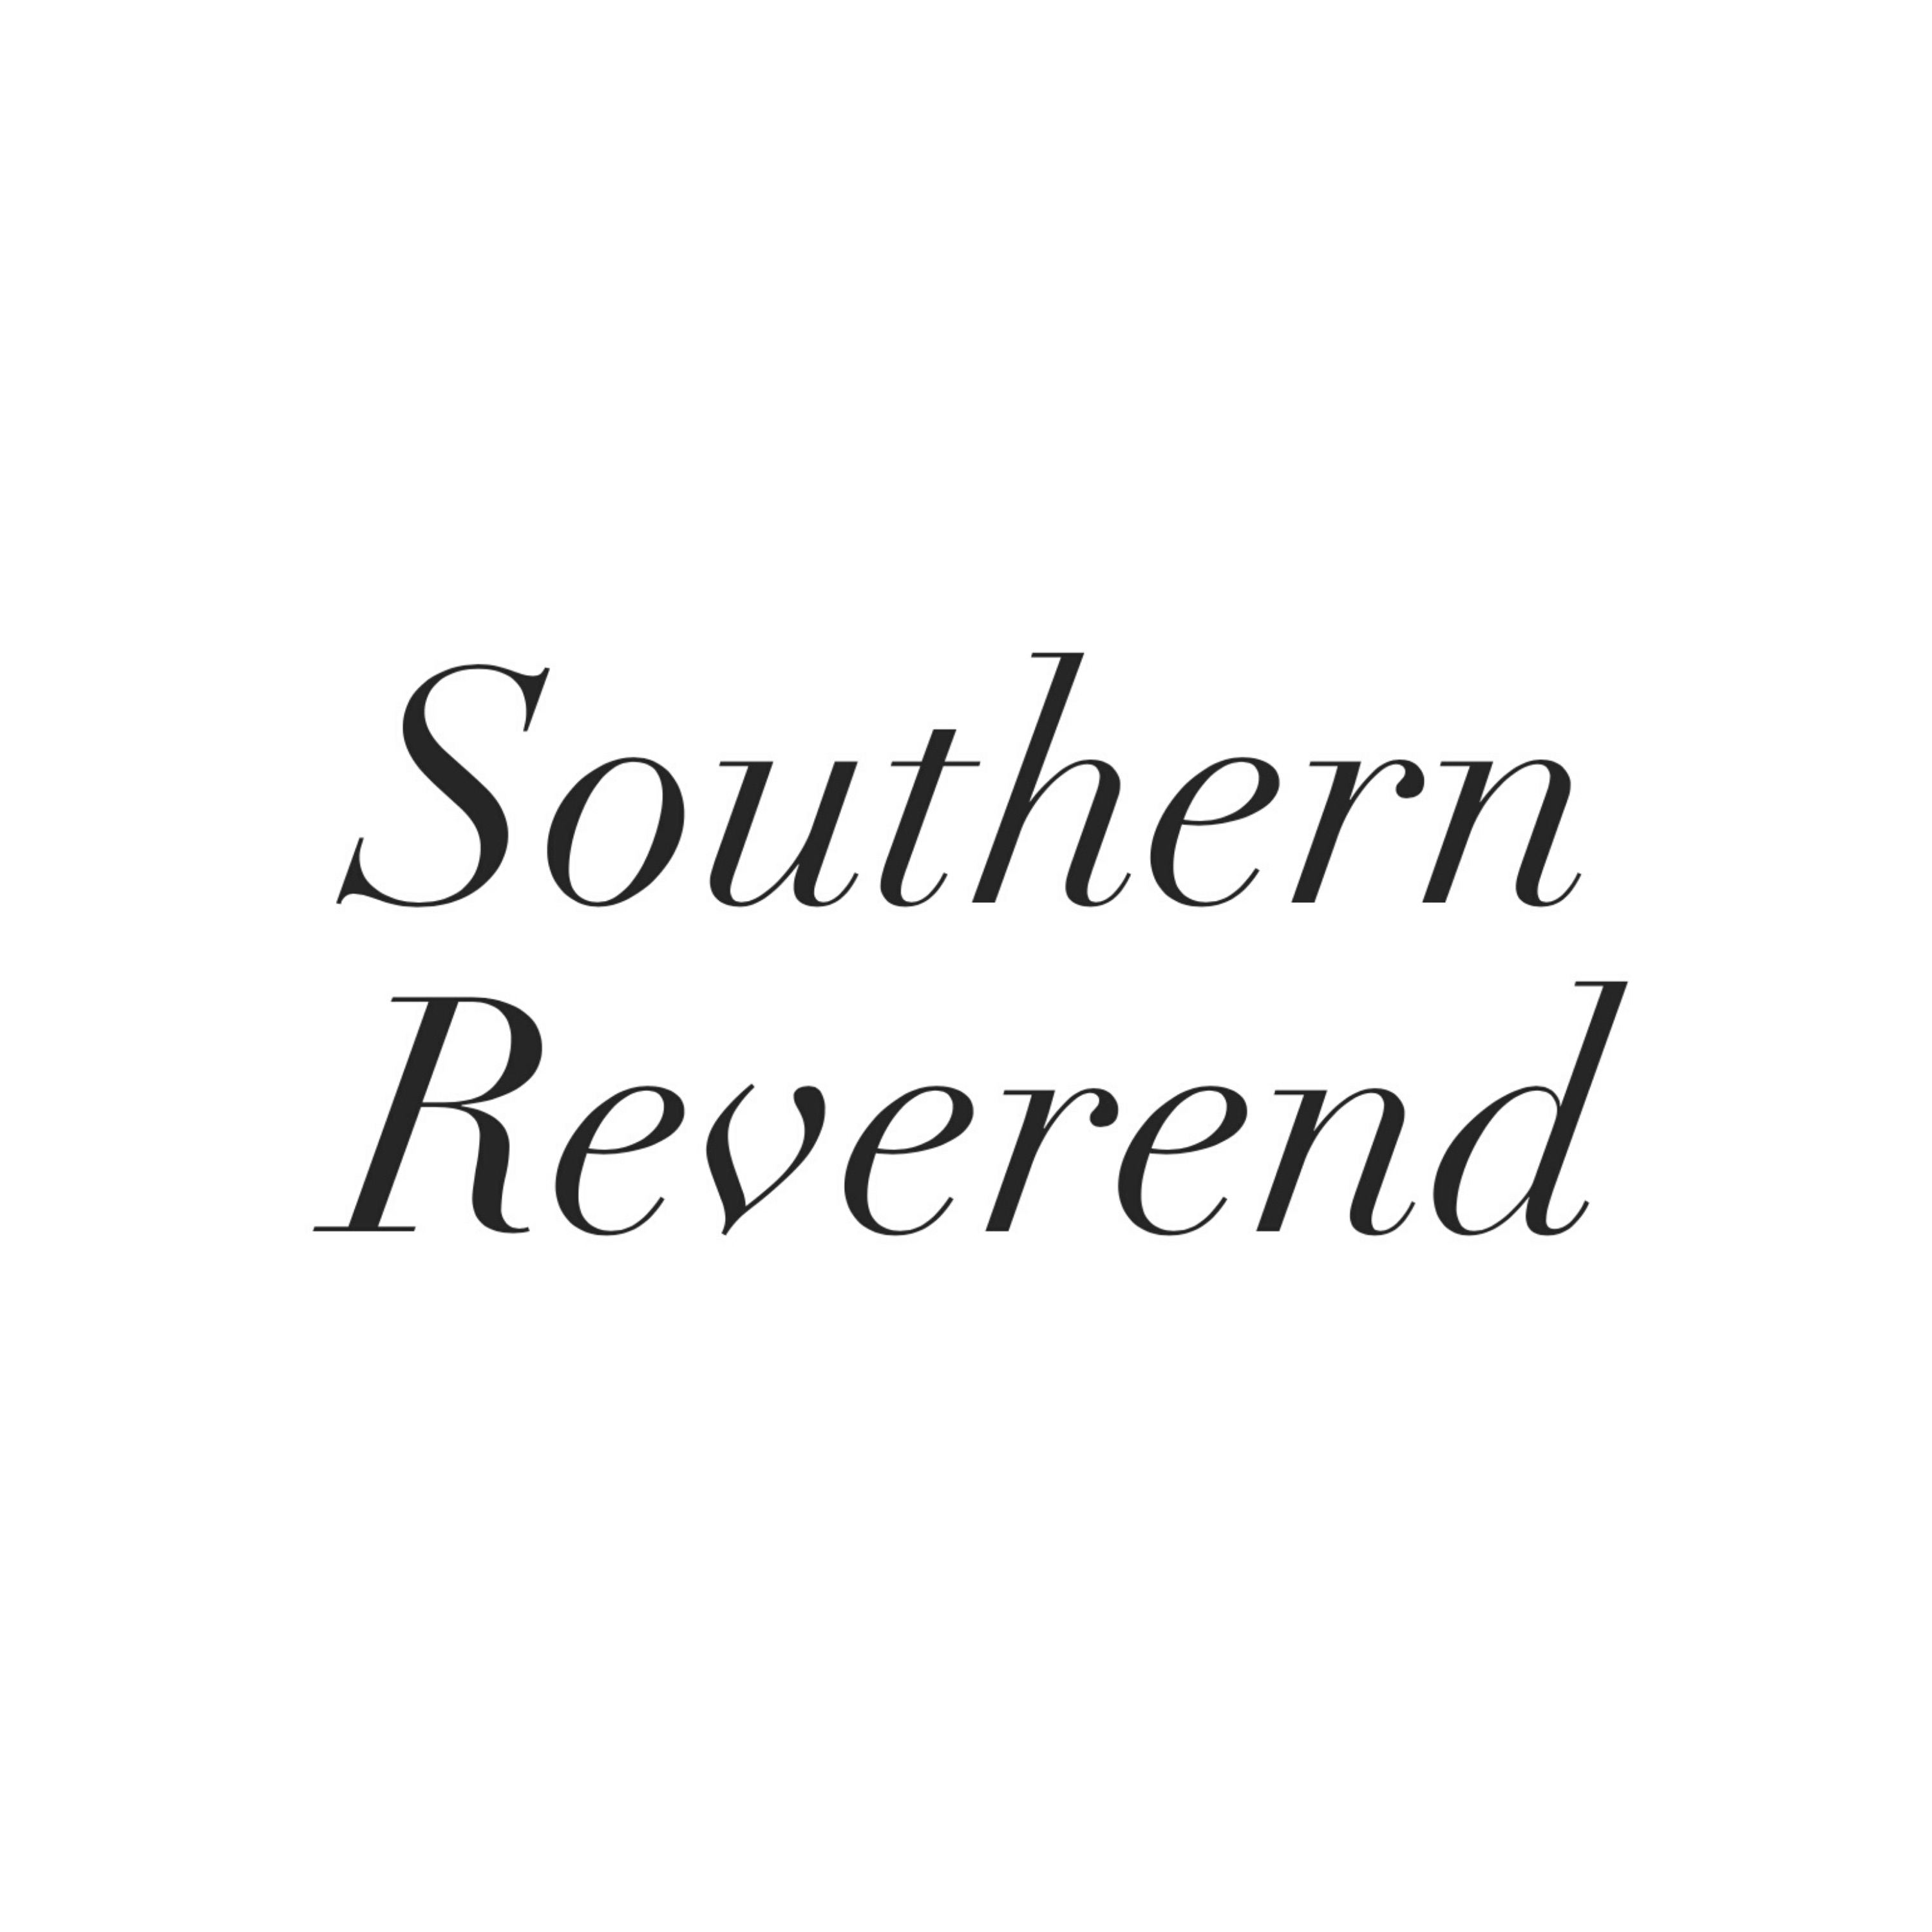 Southern Reverend